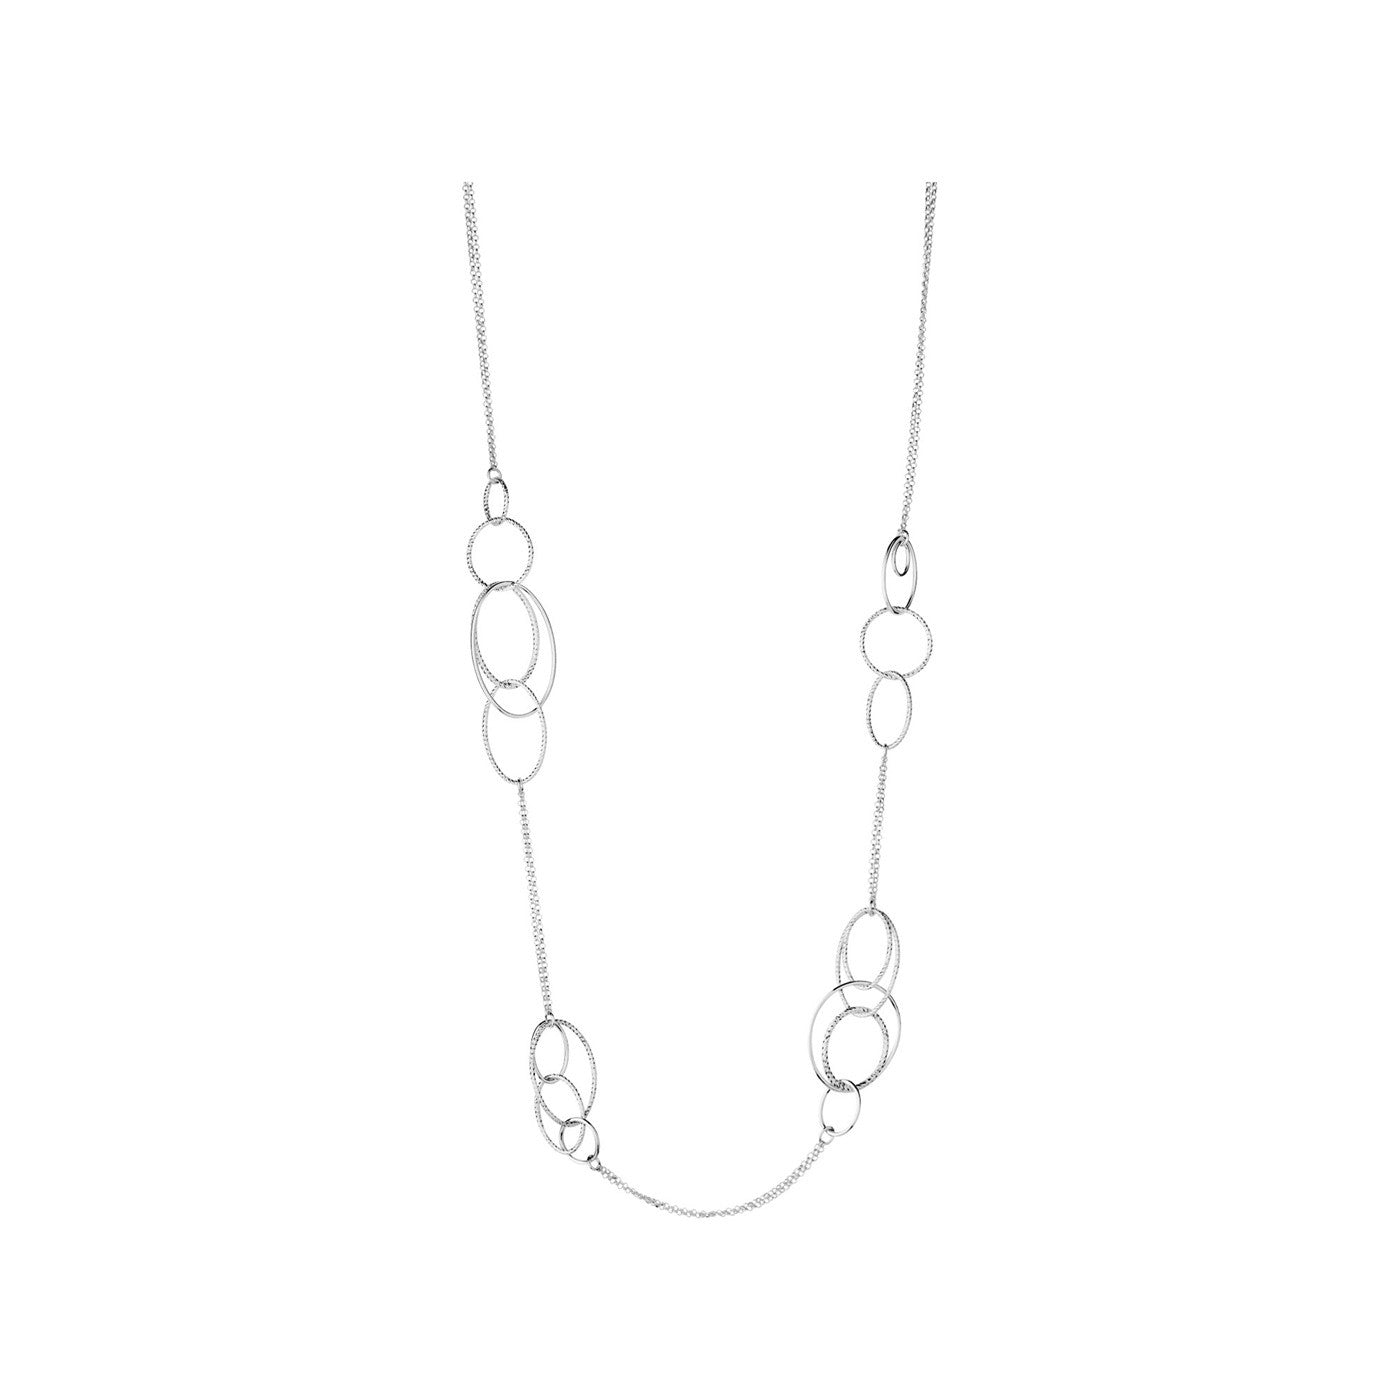 Links of London Aurora Sterling Silver Multi Station Necklace - 5020.2845